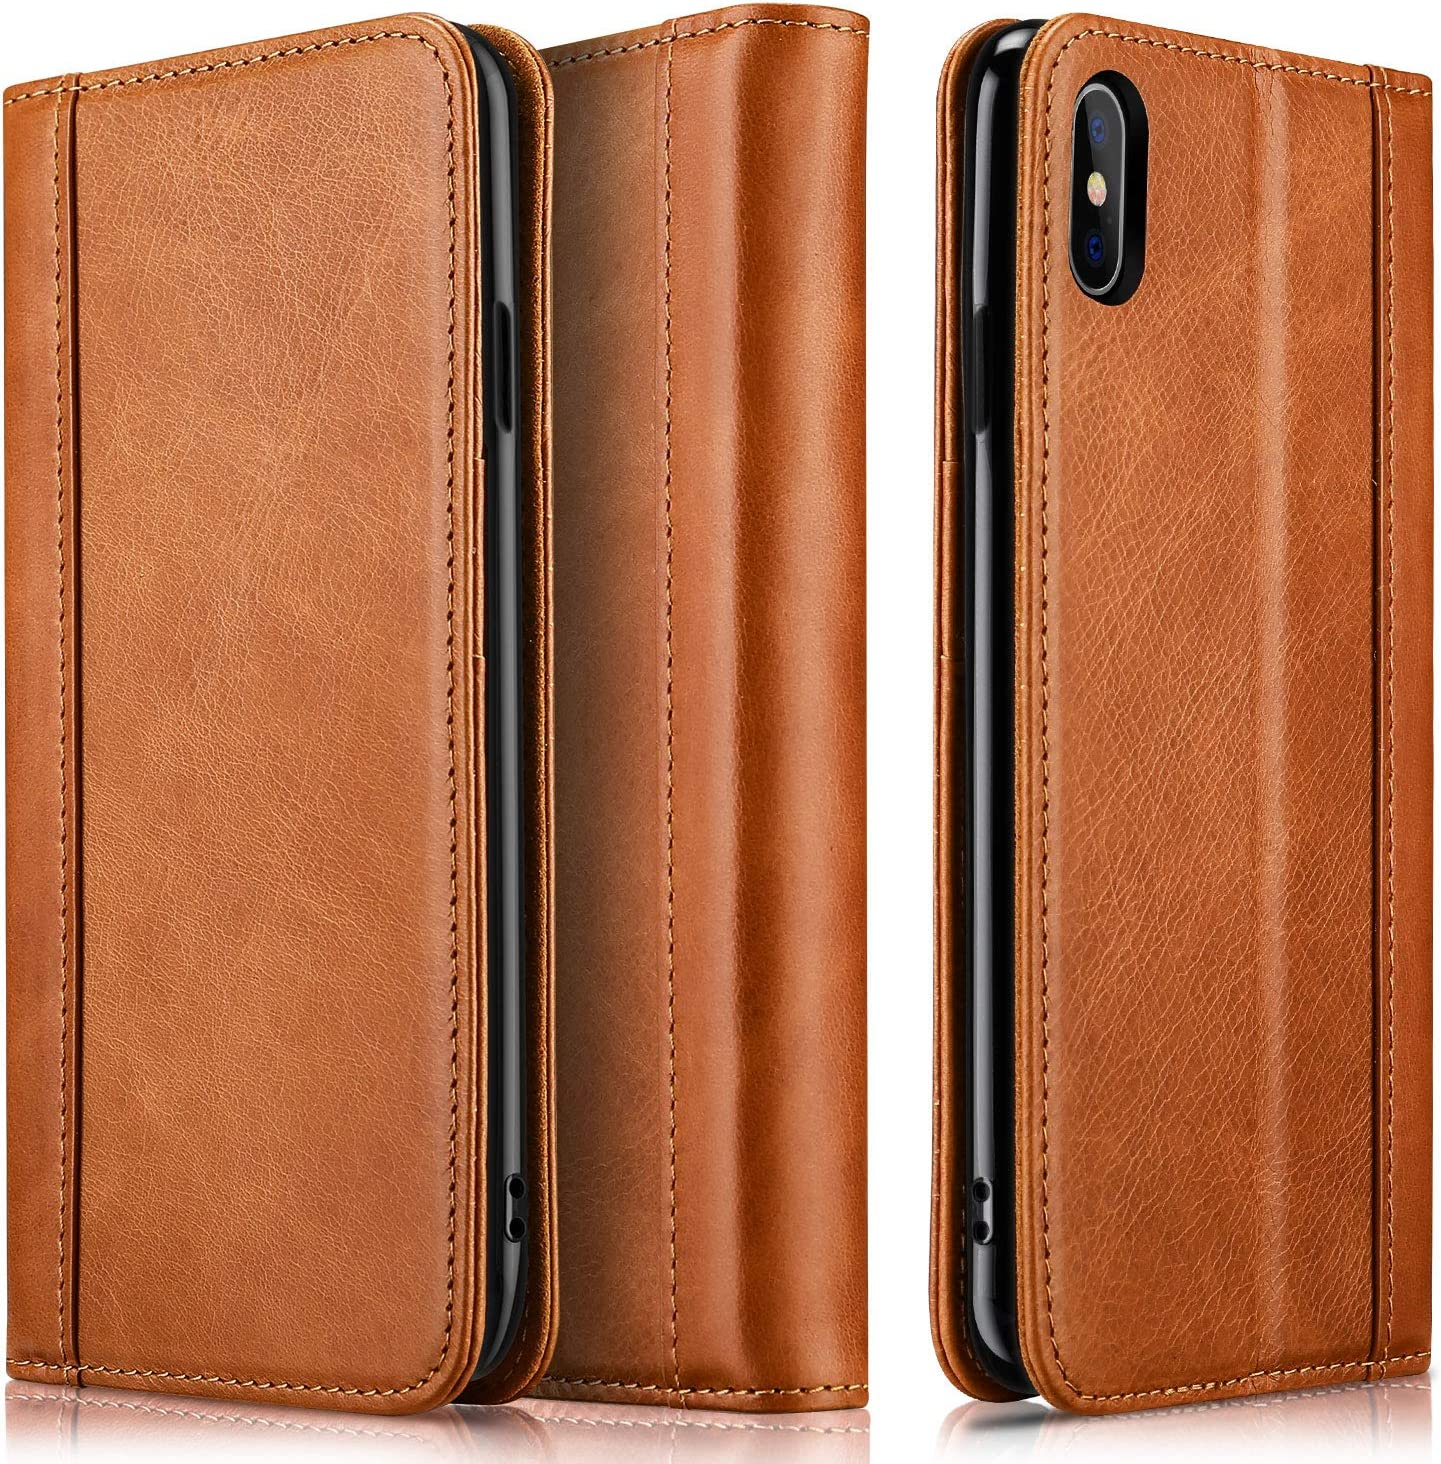 ProCase iPhone Xs Max Wallet Case, Genuine Leather Flip Cover Case with Kickstand Credit Card Holder and Magnetic Closure for iPhone Xs Max 6.5 Inch 2018 Release –Brown